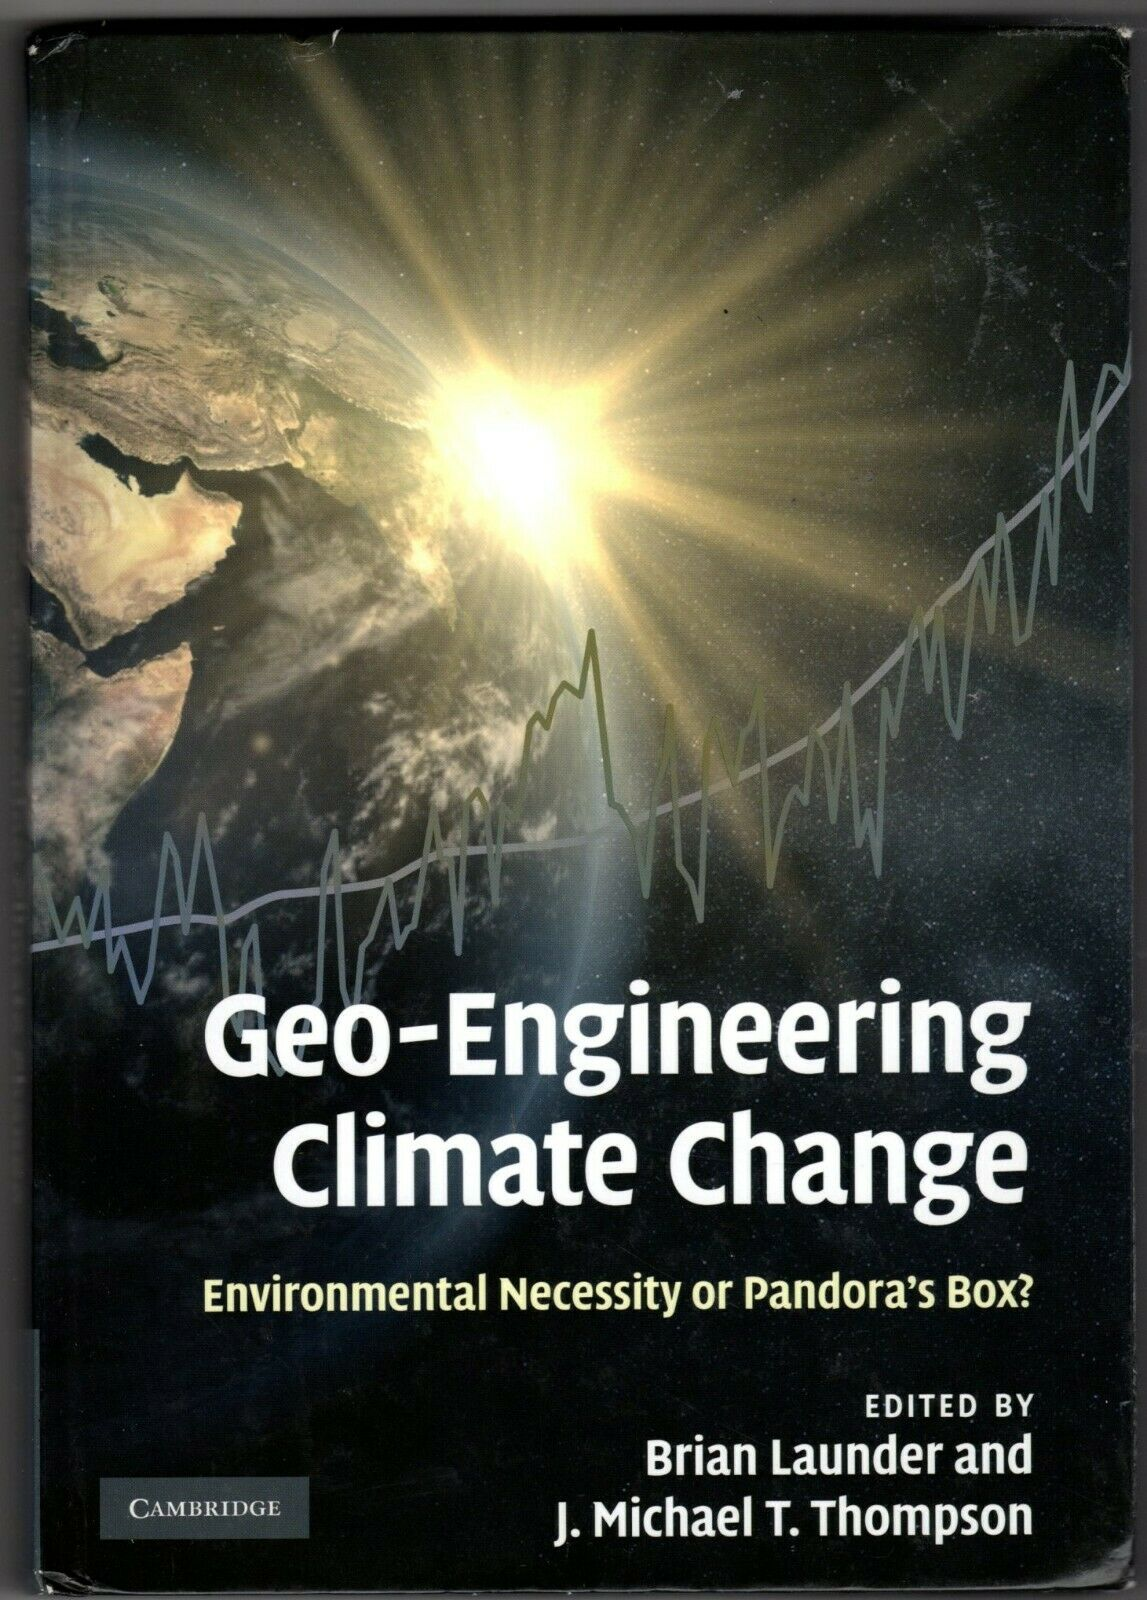 Geo-Engineering Climate Change : Environmental Necessity or Pandora's Box?  by J. Michael T. Thompson (2009, Hardcover) for sale online | eBay